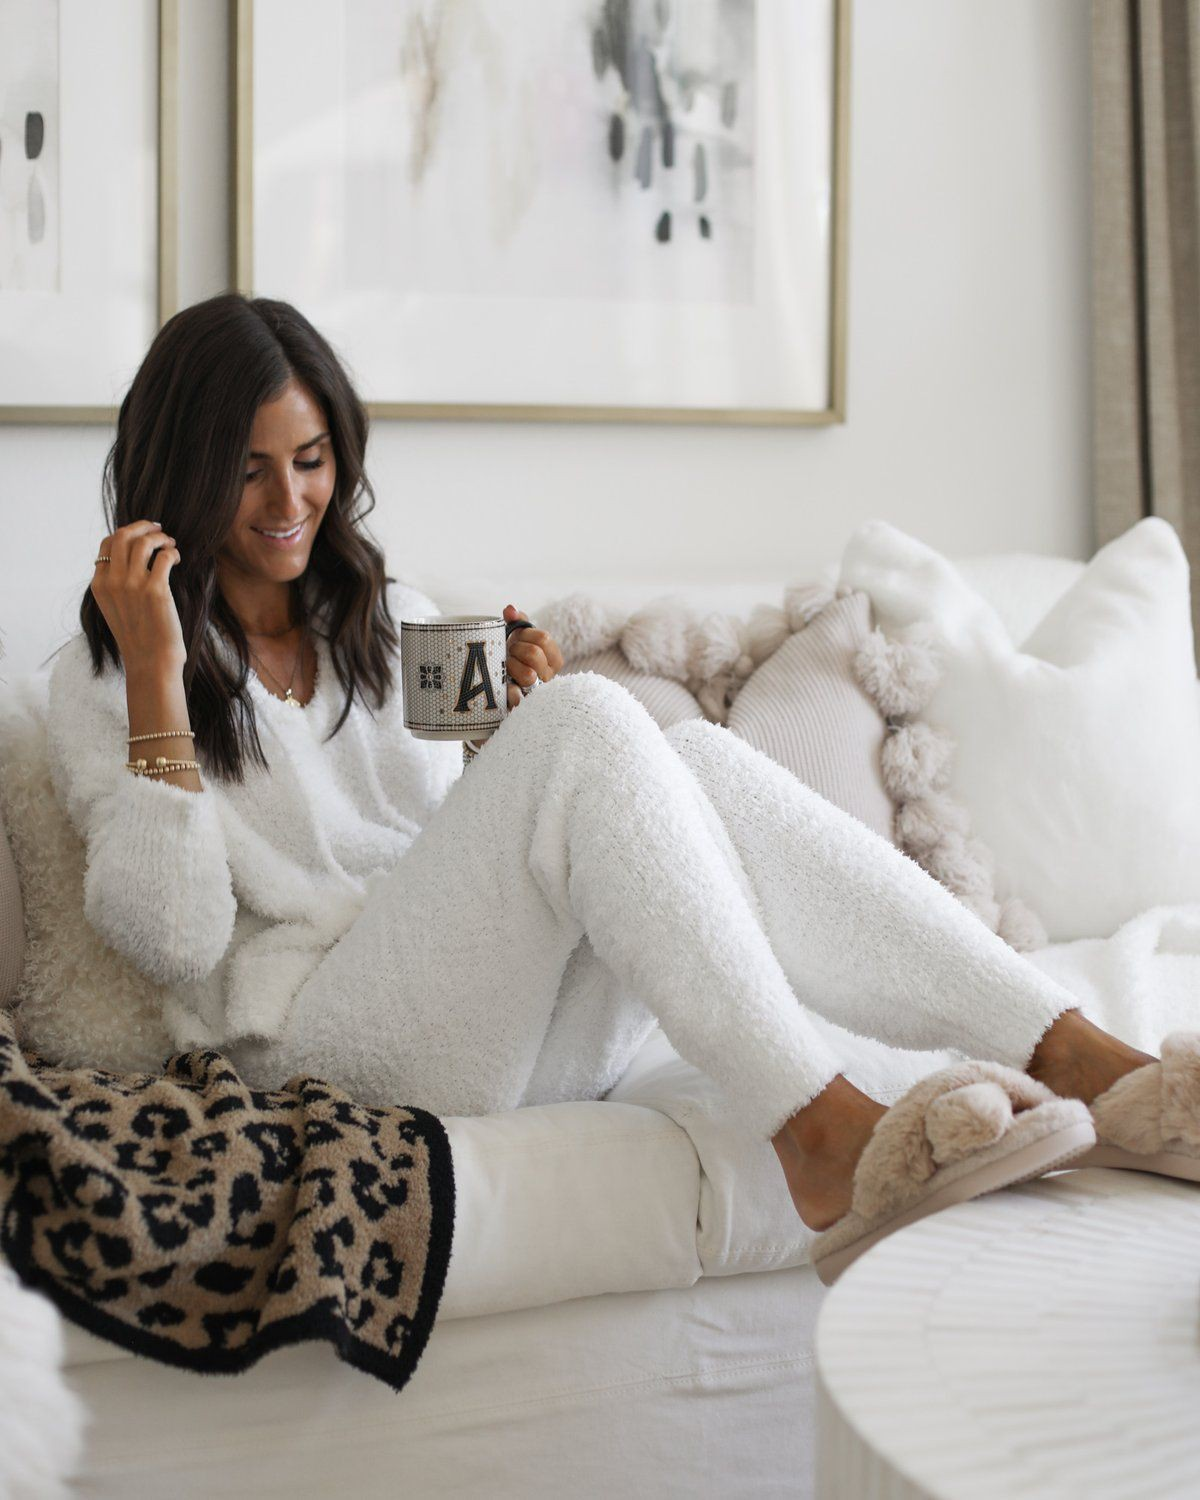 White colour outfit ideas 2020 with trousers, sweater, pajamas